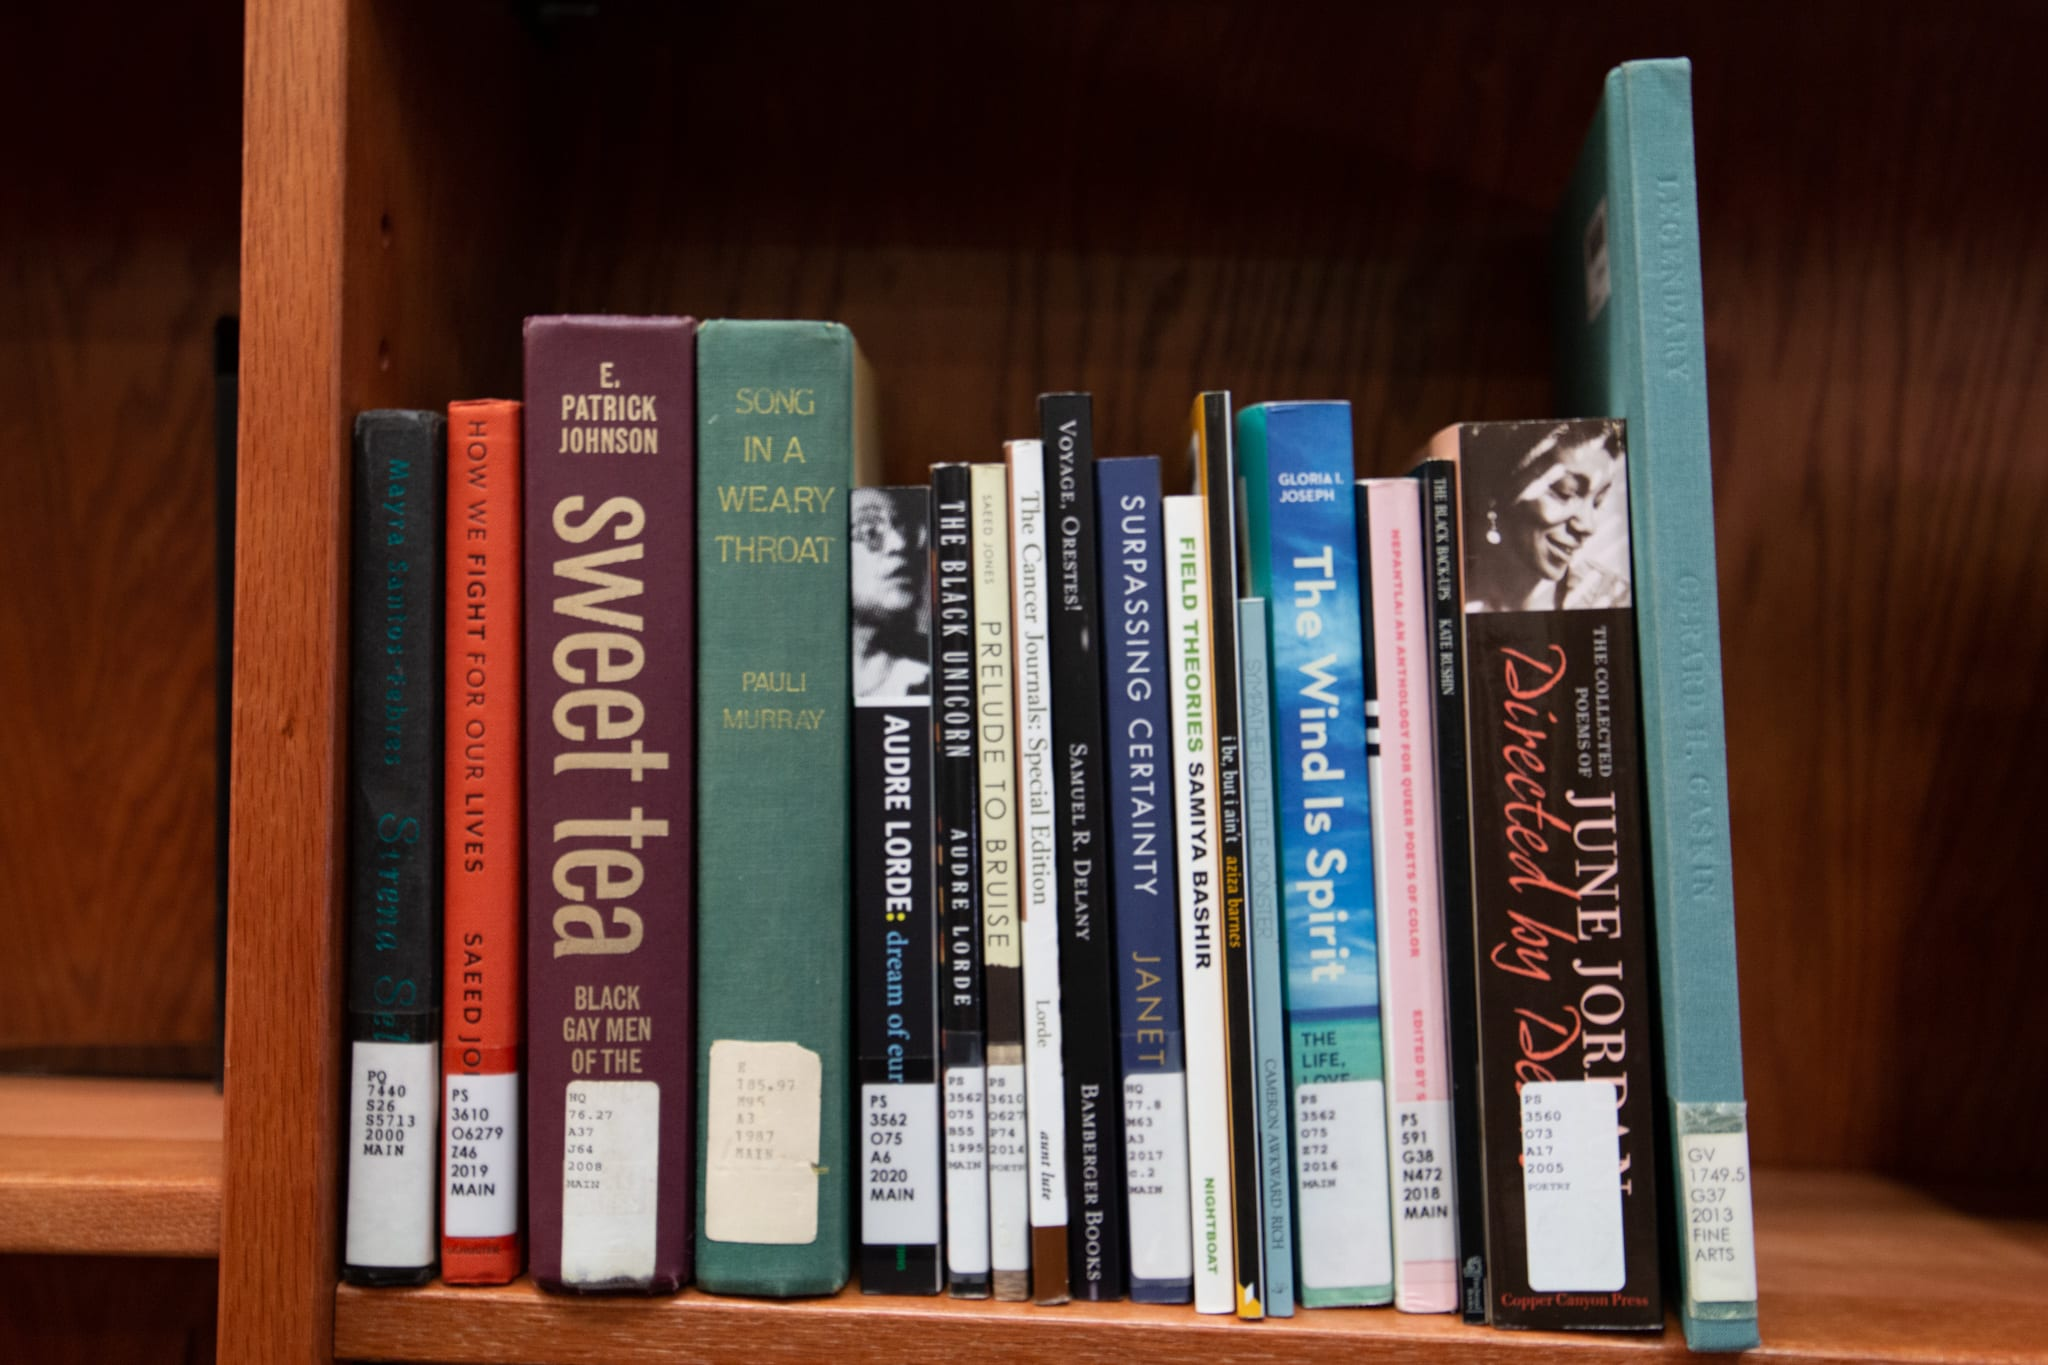 Several books from the Black Queer Studies Collection are displayed on a wooden library shelf.